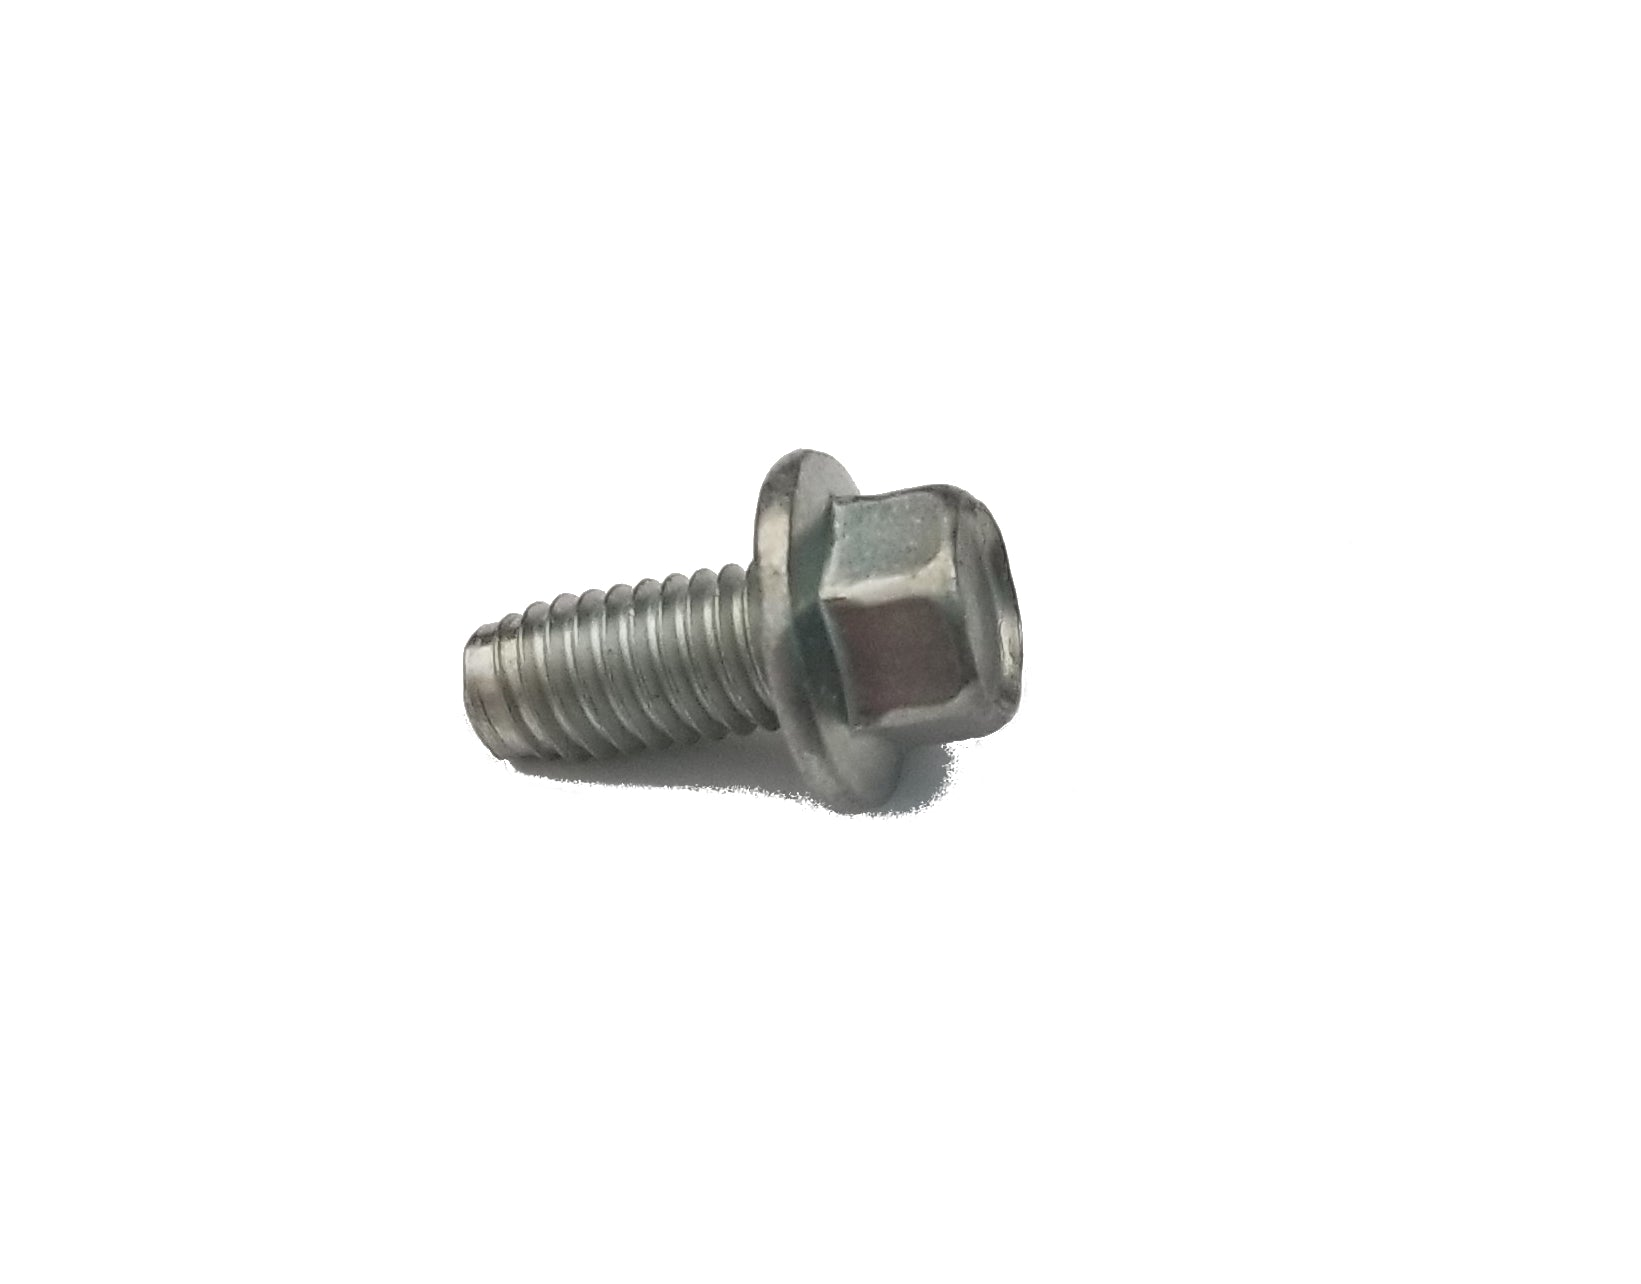 John Deere Original Equipment Screw - 37M7089